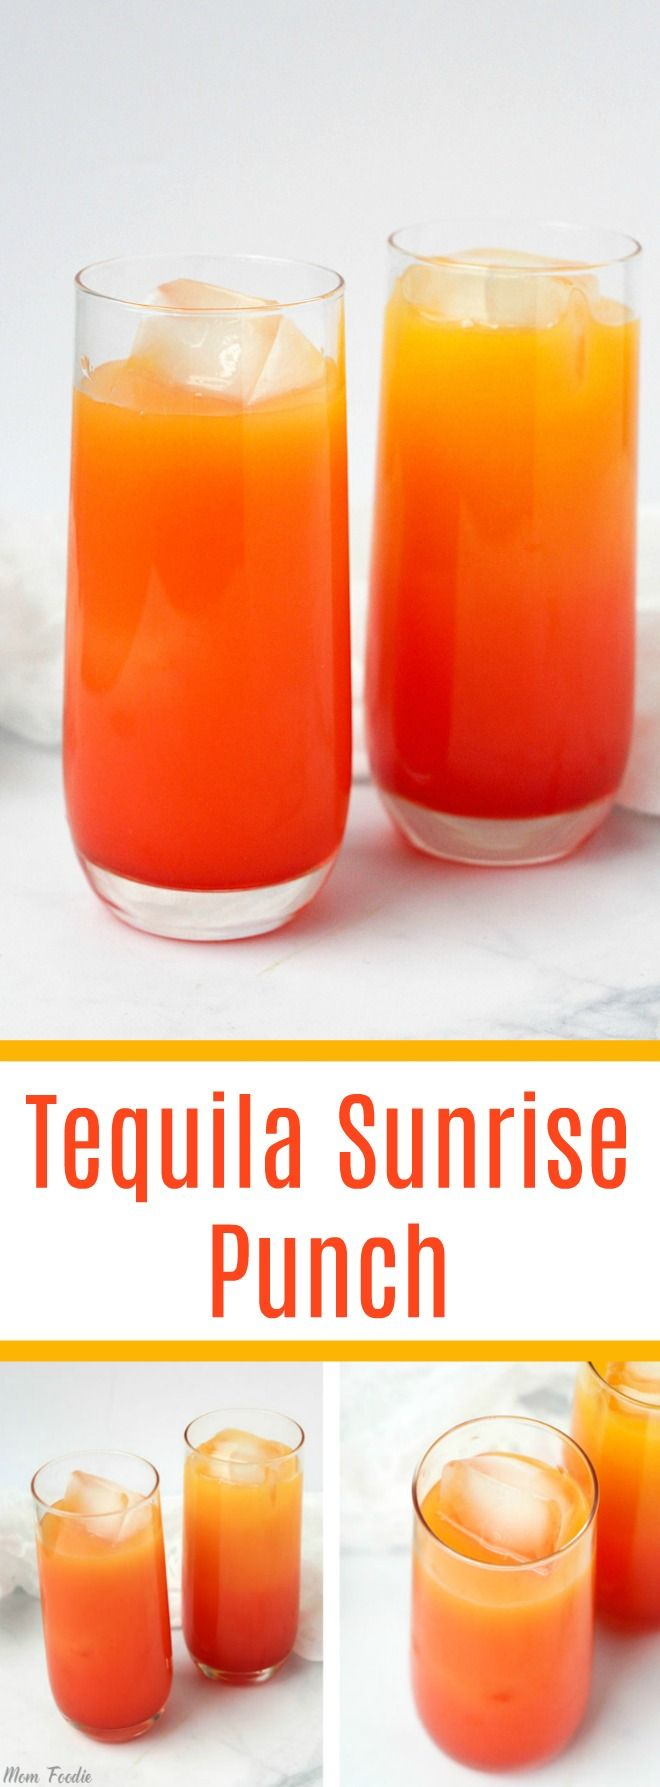 how to make a tequila sunrise cocktail drink